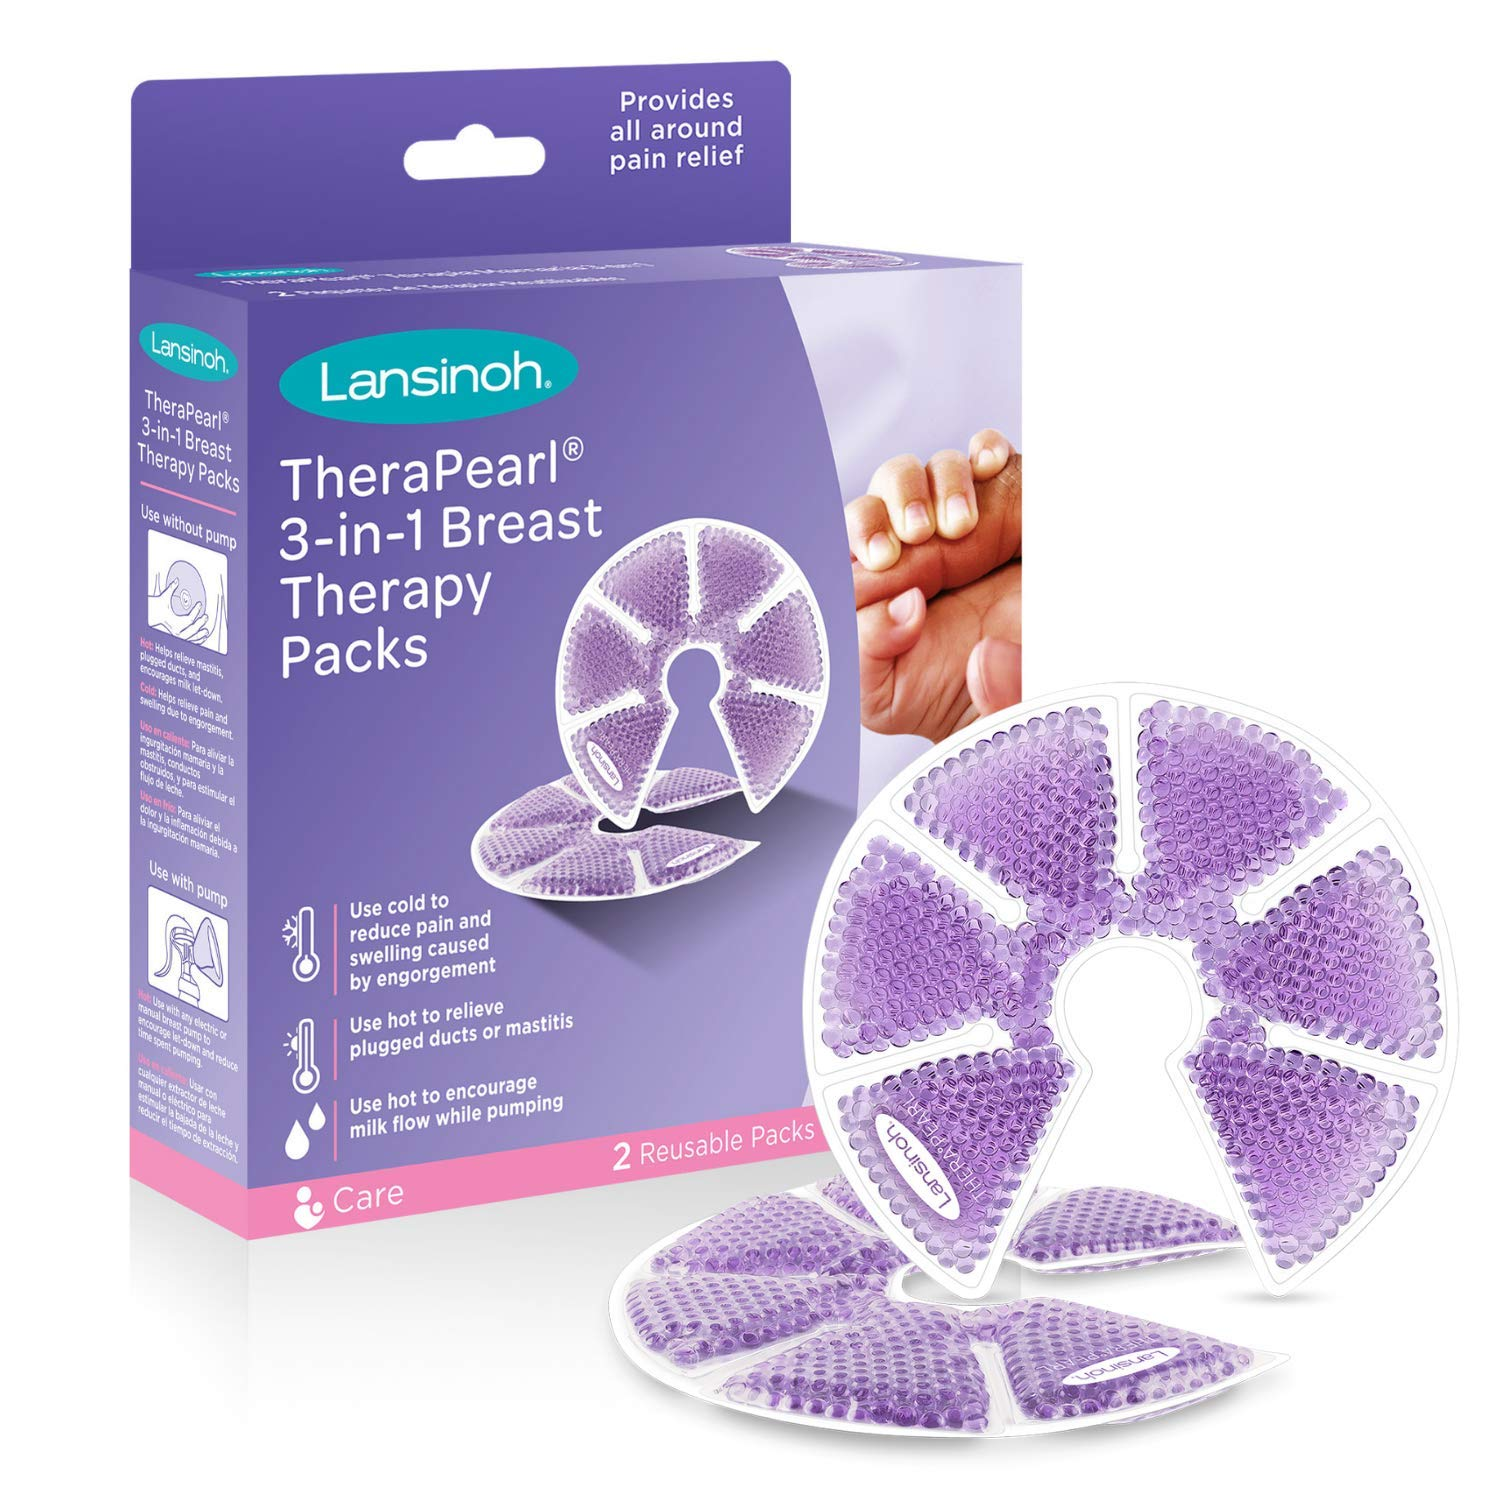 Lansinoh TheraPearl 3-in-1 Hot or Cold Breast Therapy Pack with Cover, 2 Count